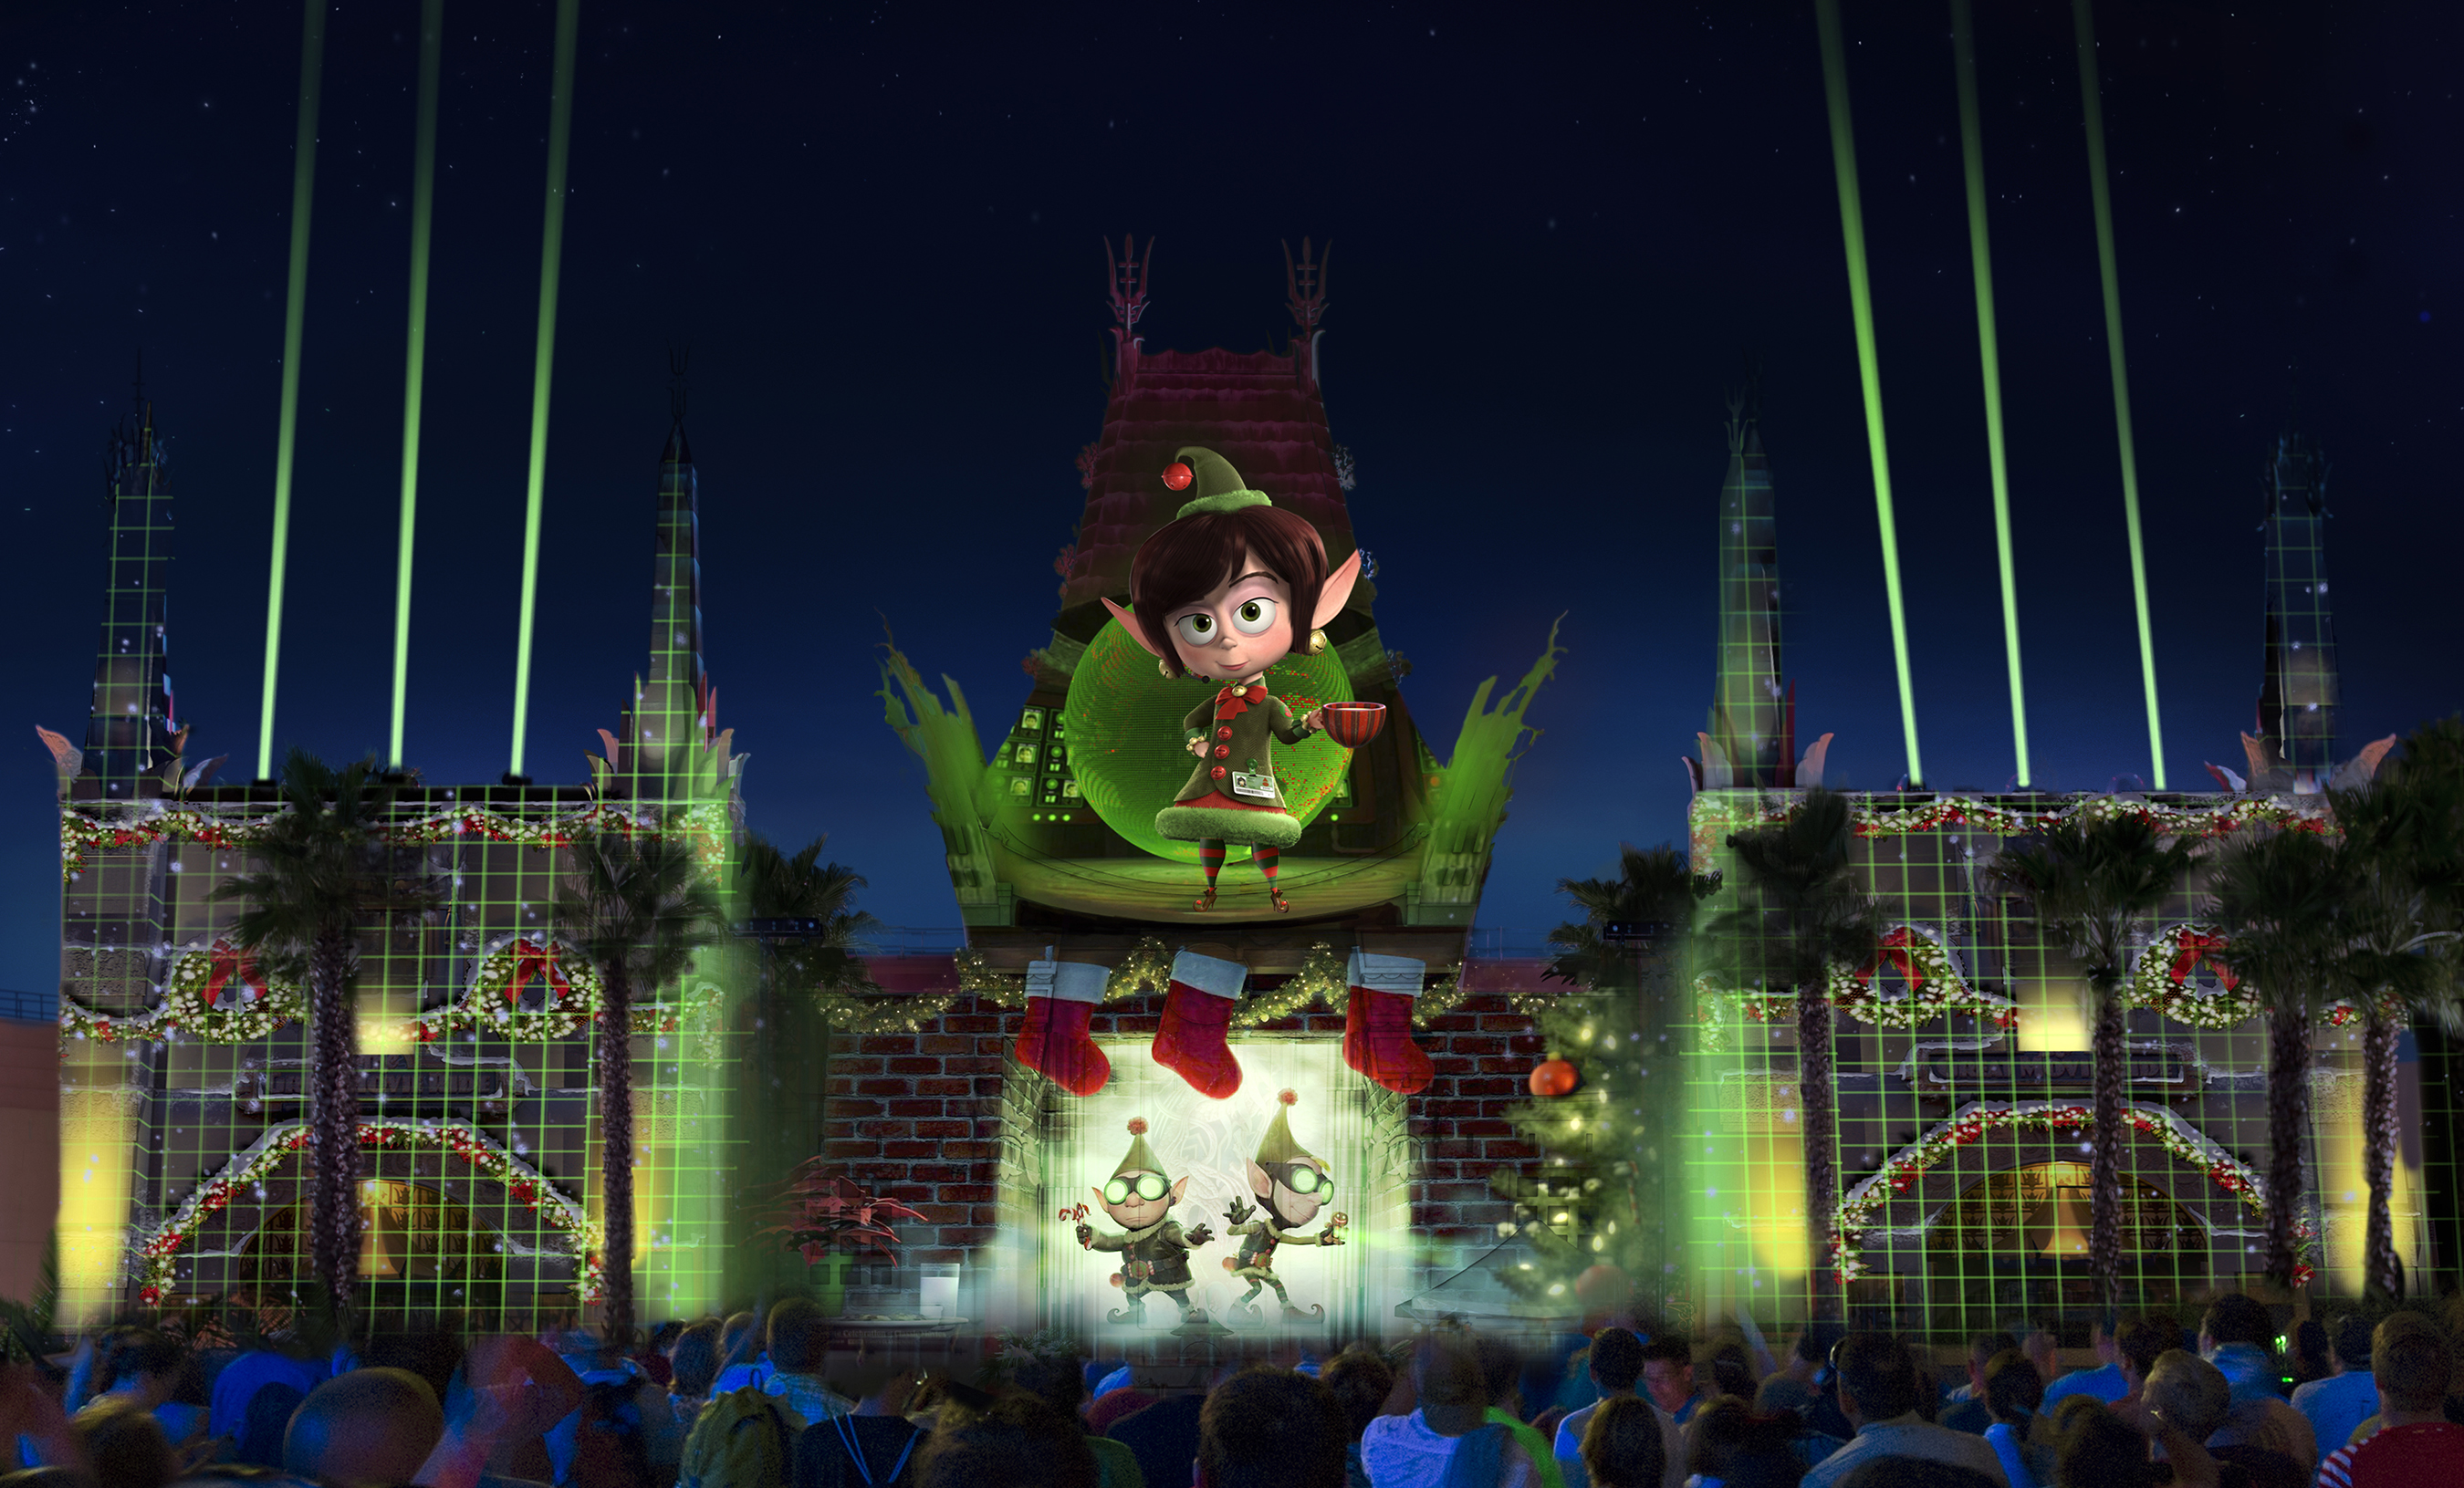 Jingle Bell, Jingle BAM! - Prep and Landing